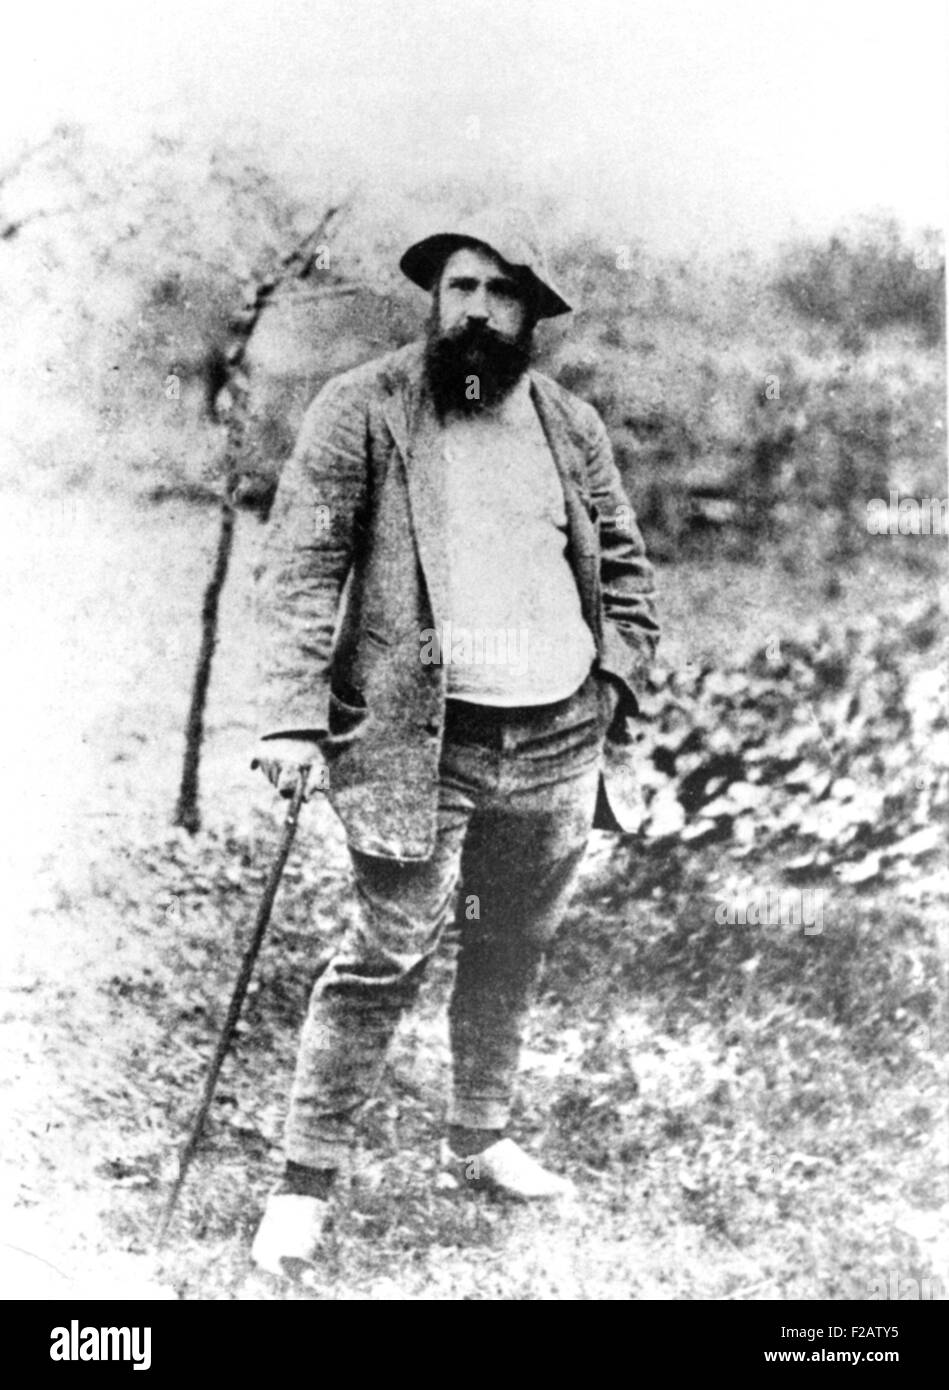 Claude Monet, at age 49, in his garden at Giverny, France 1890. Photo by Theodore Robinson. (CSU_2015_11_1547) - Stock Image